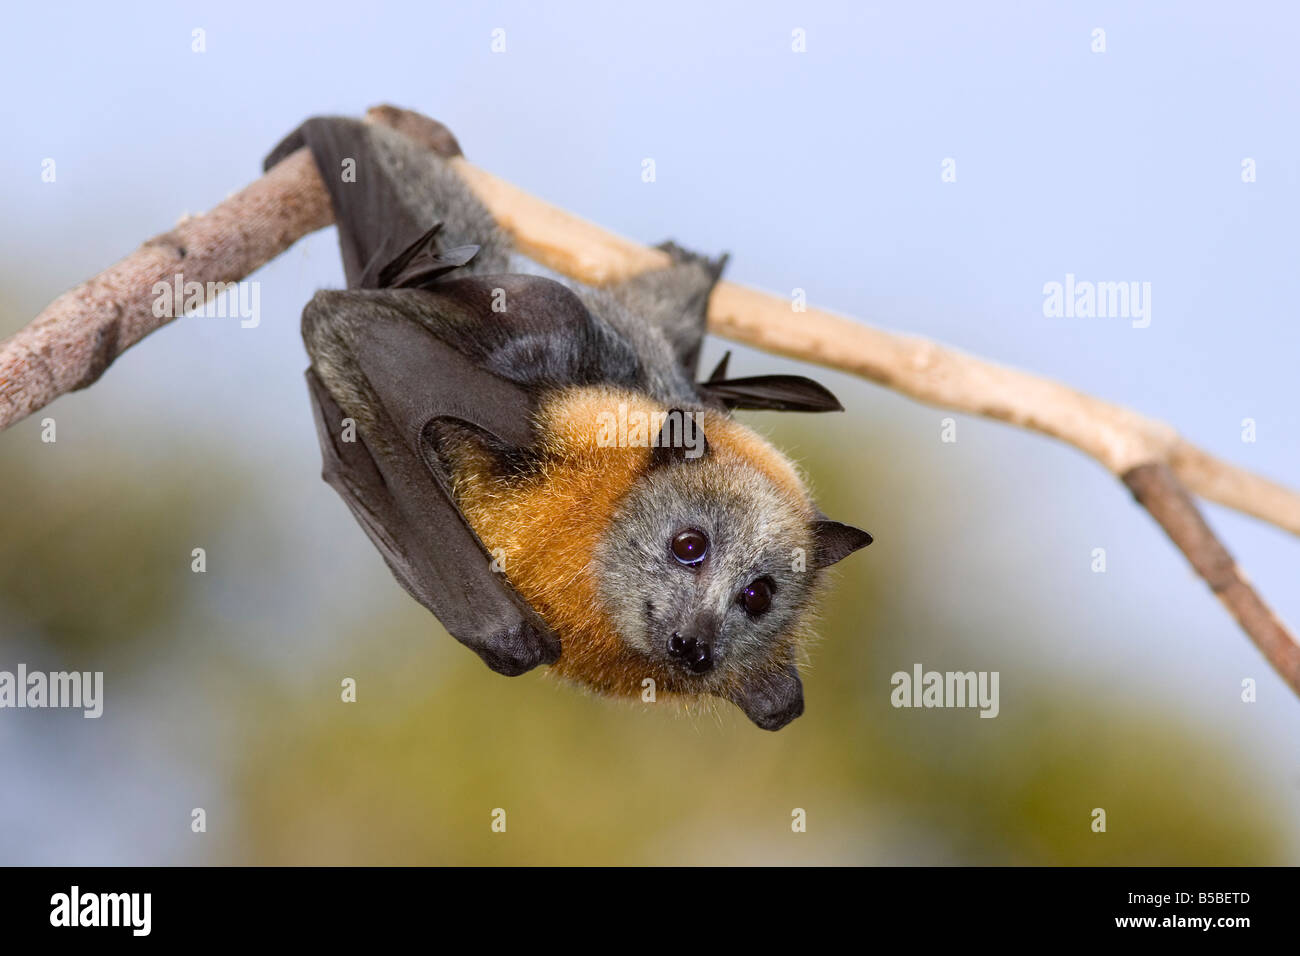 grey-headed-flying-fox-pteropus-poliocephalus-endemic-to-eastern-australia-B5BETD.jpg